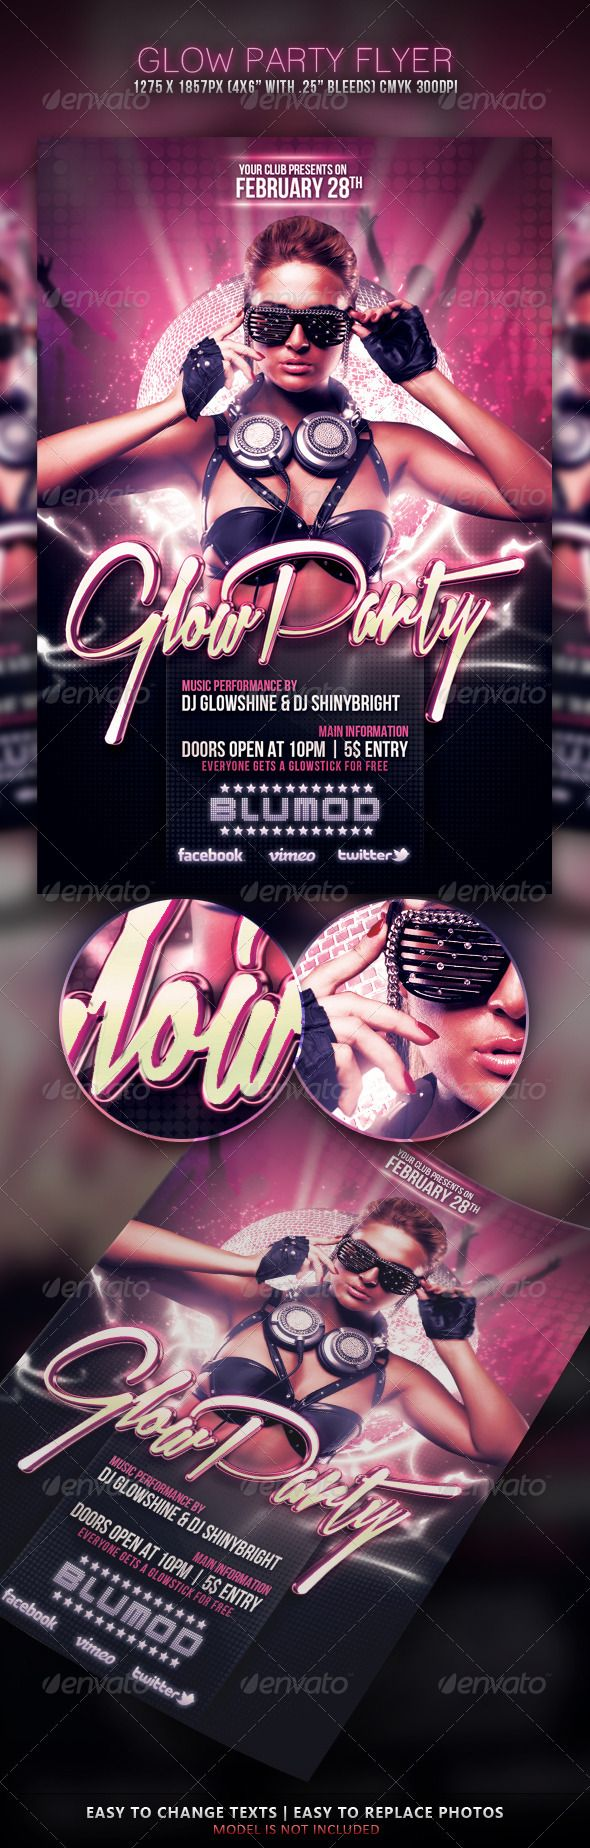 Glow Party Flyer — Photoshop PSD #bright #night • Available here → https://graphicriver.net/item/glow-party-flyer/3930752?ref=pxcr